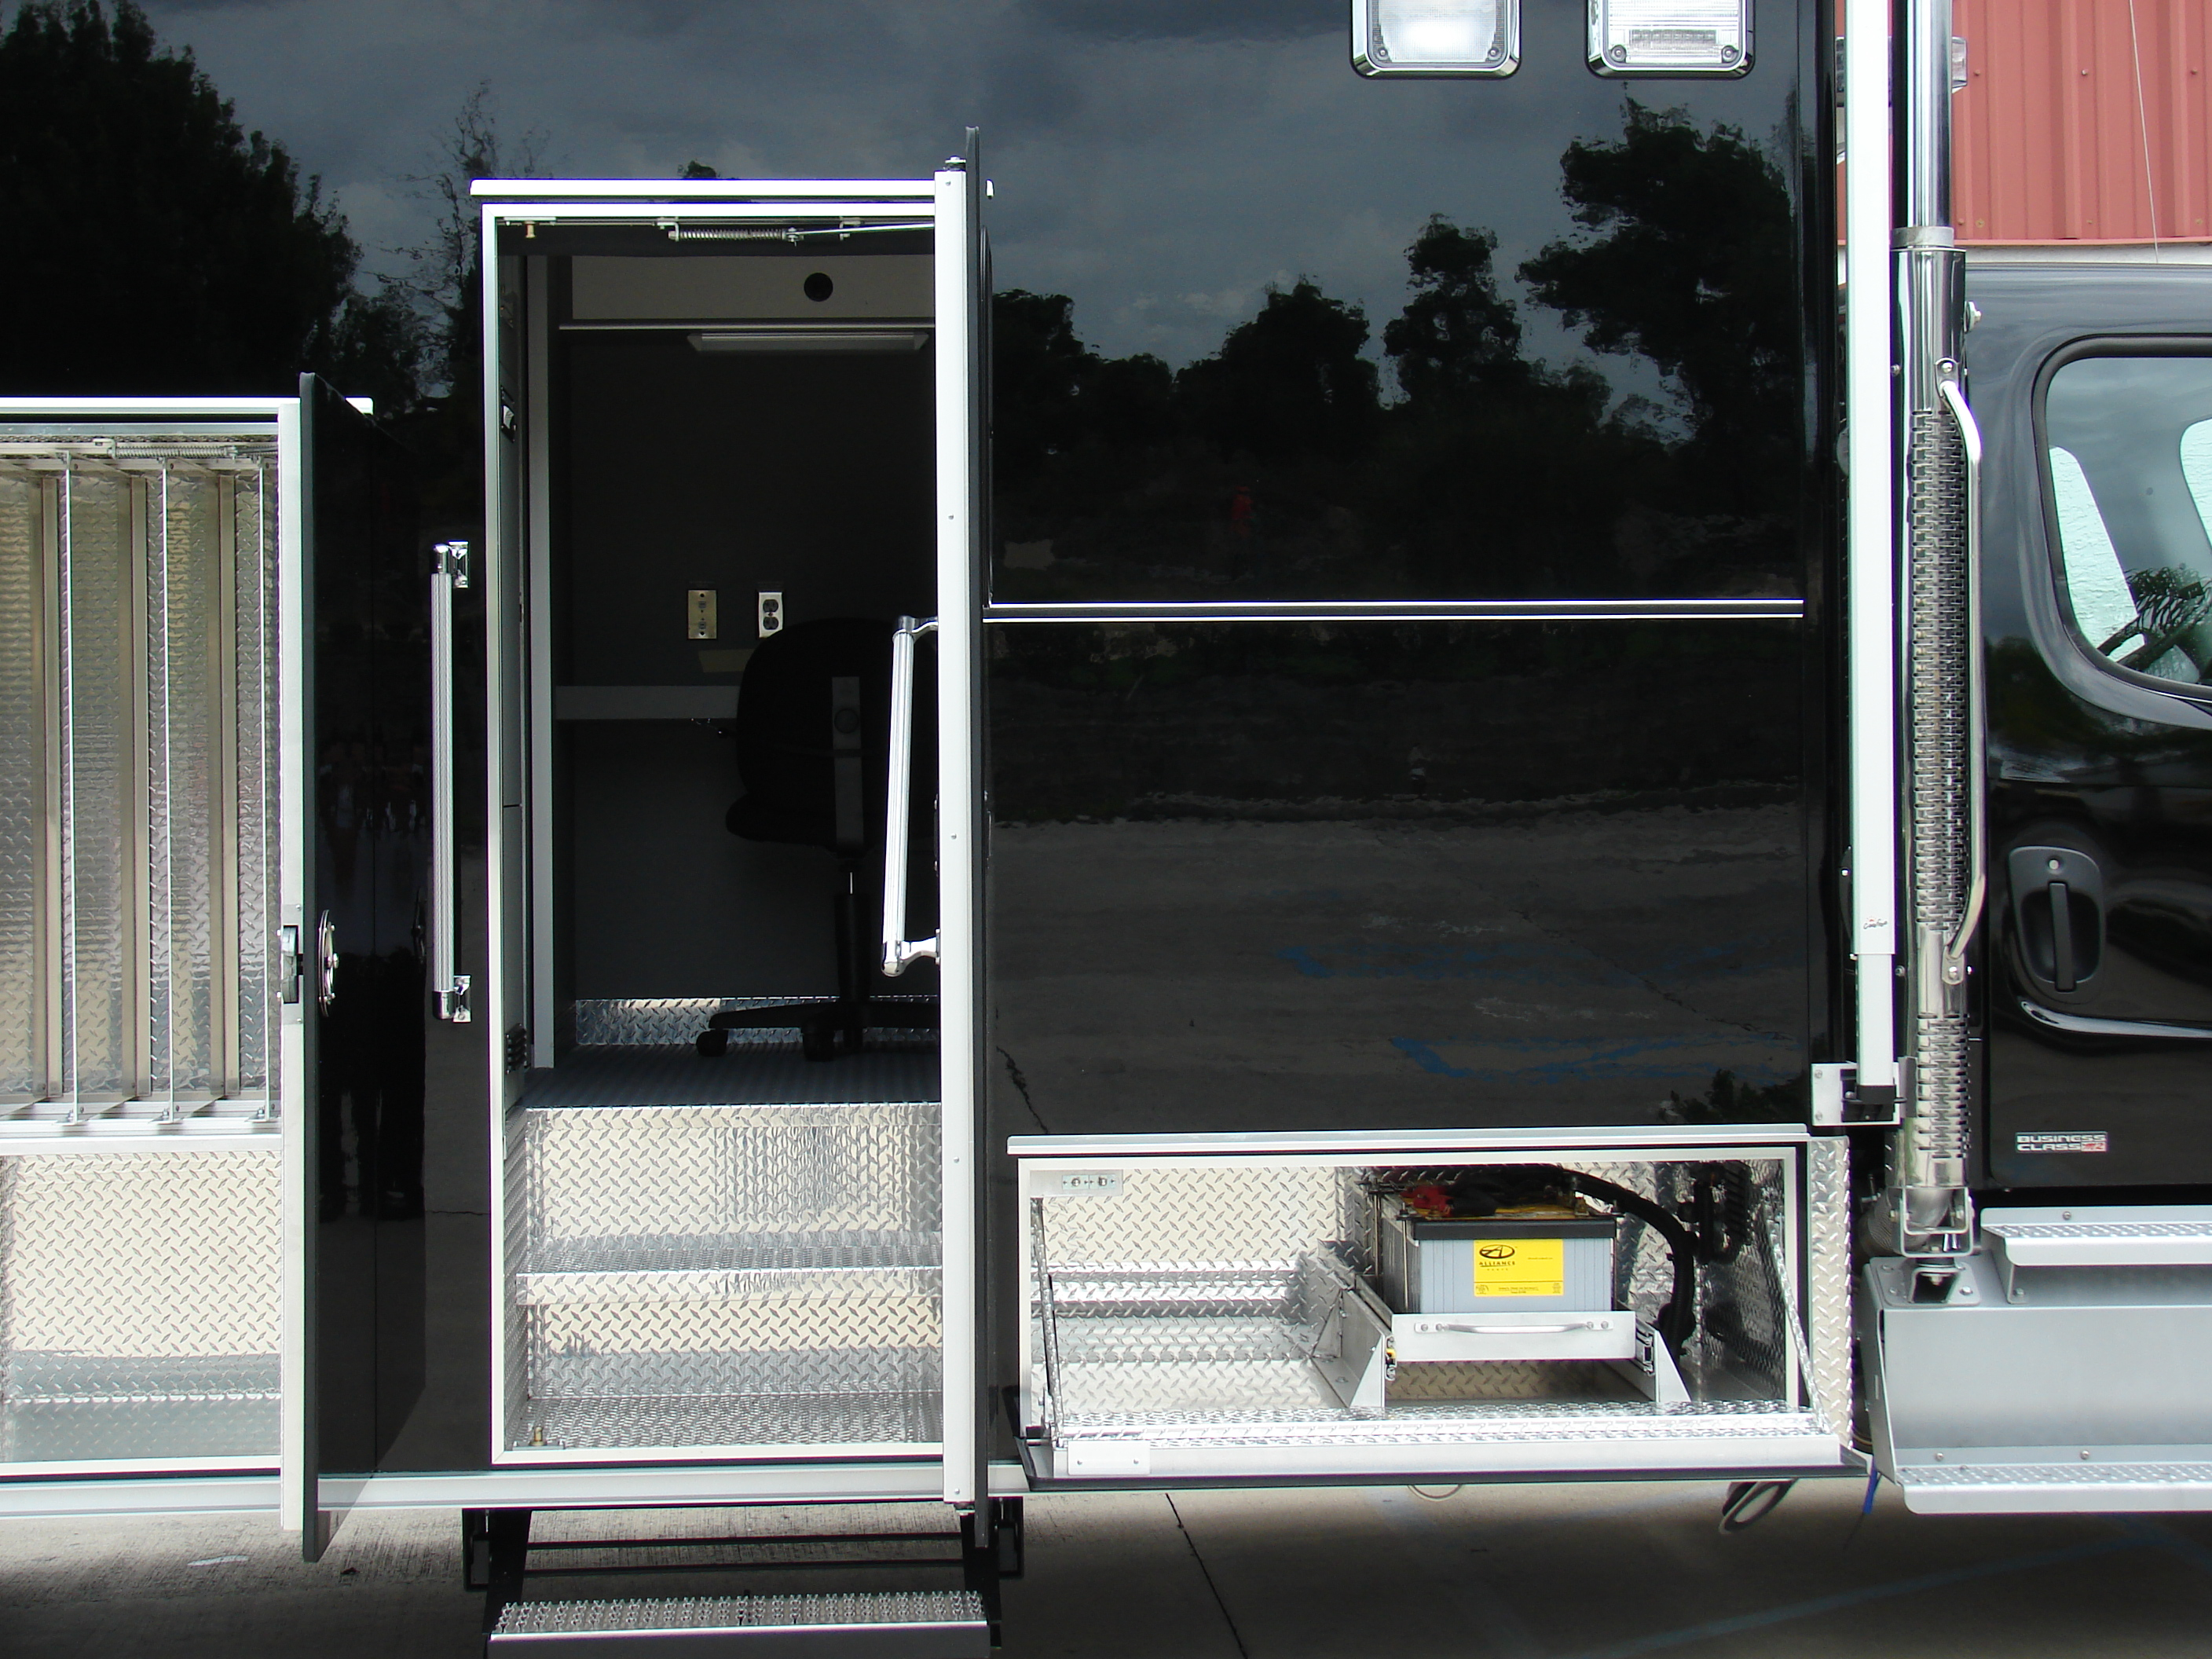 20-Ft. Command Vehicle